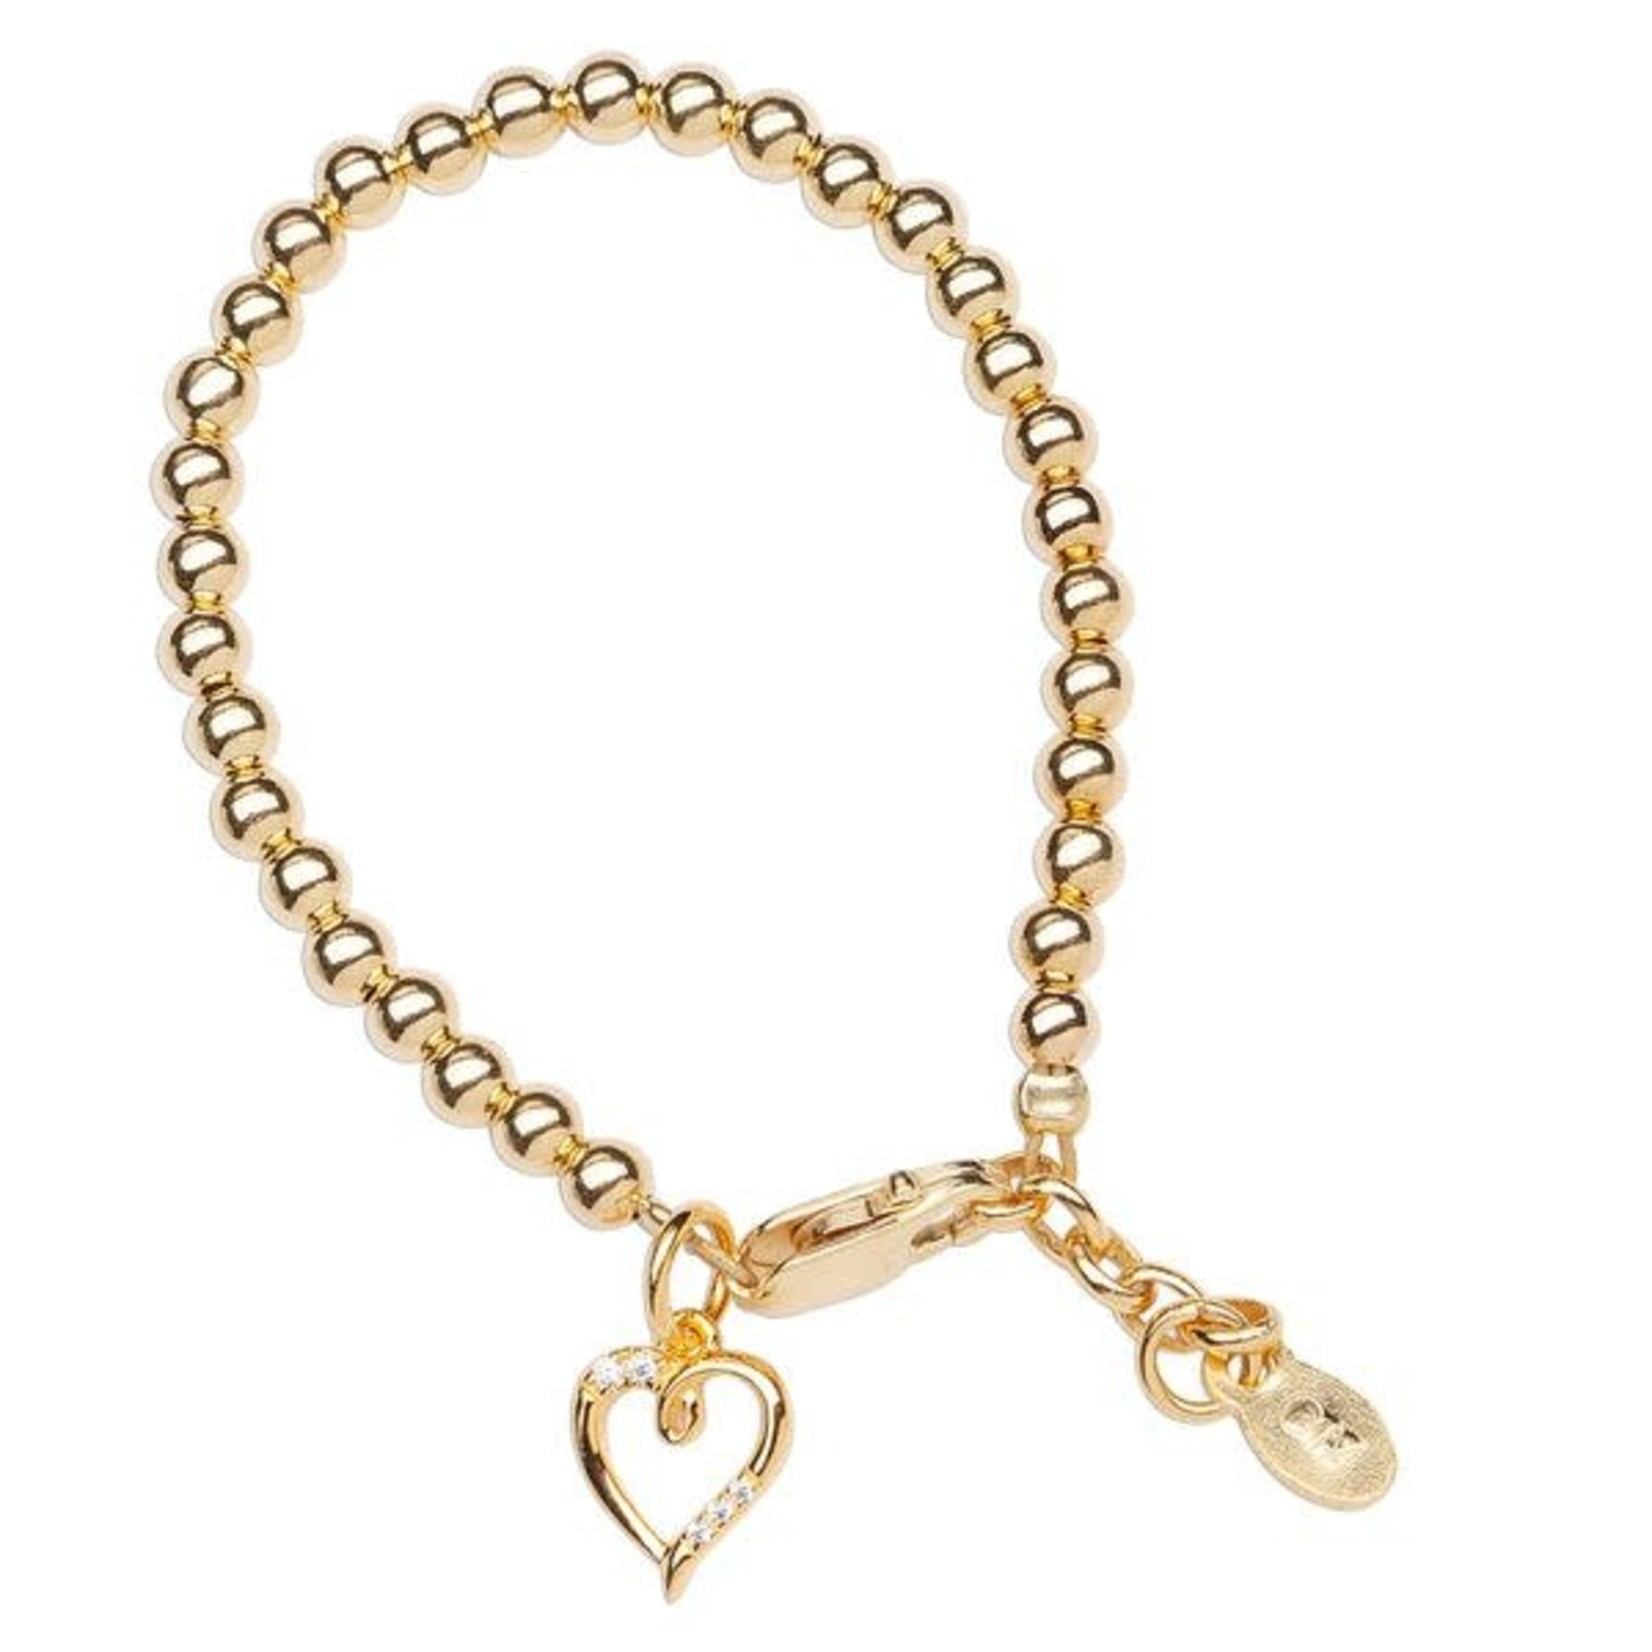 Cherished Moments Aria - SM (0-12) 14K Gold Plated Bracelet with Heart - Small 0-12M